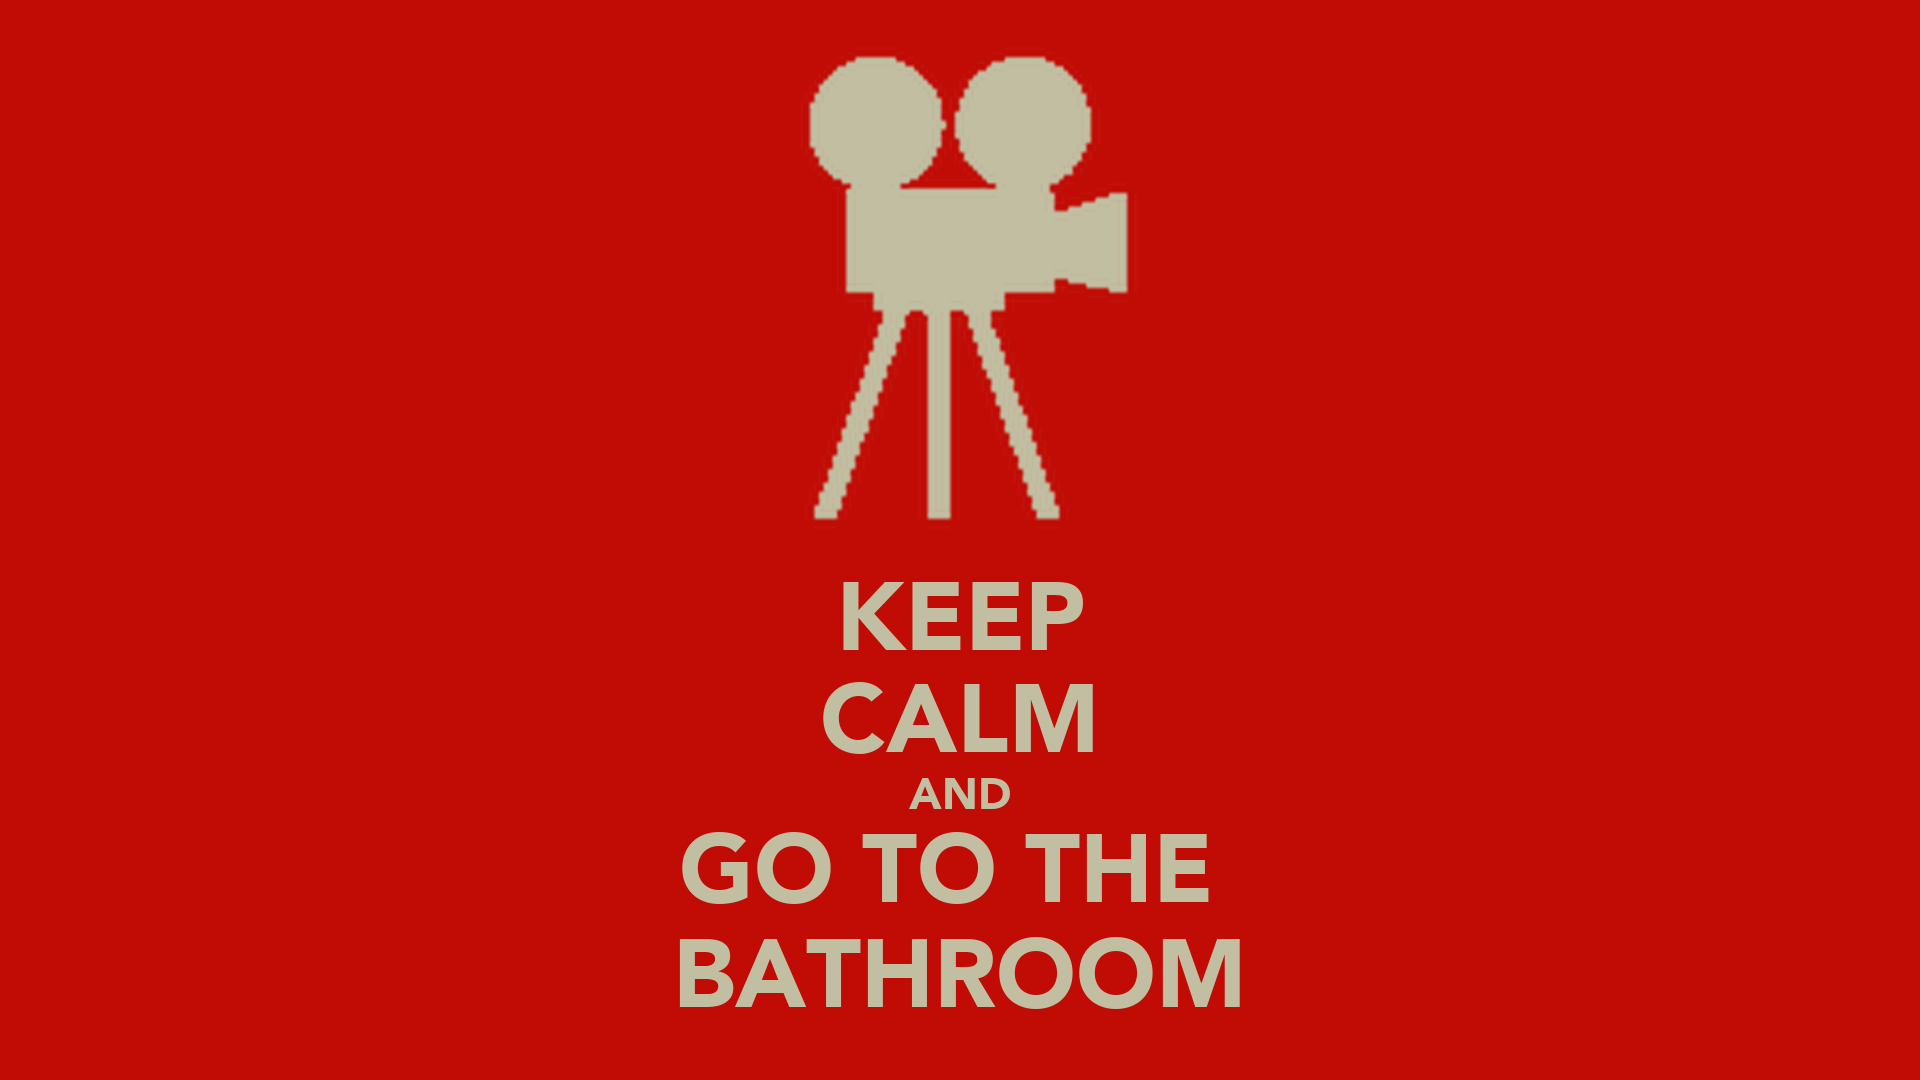 KEEP CALM AND GO TO THE BATHROOM  KEEP CALM AND CARRY ON Image Generator